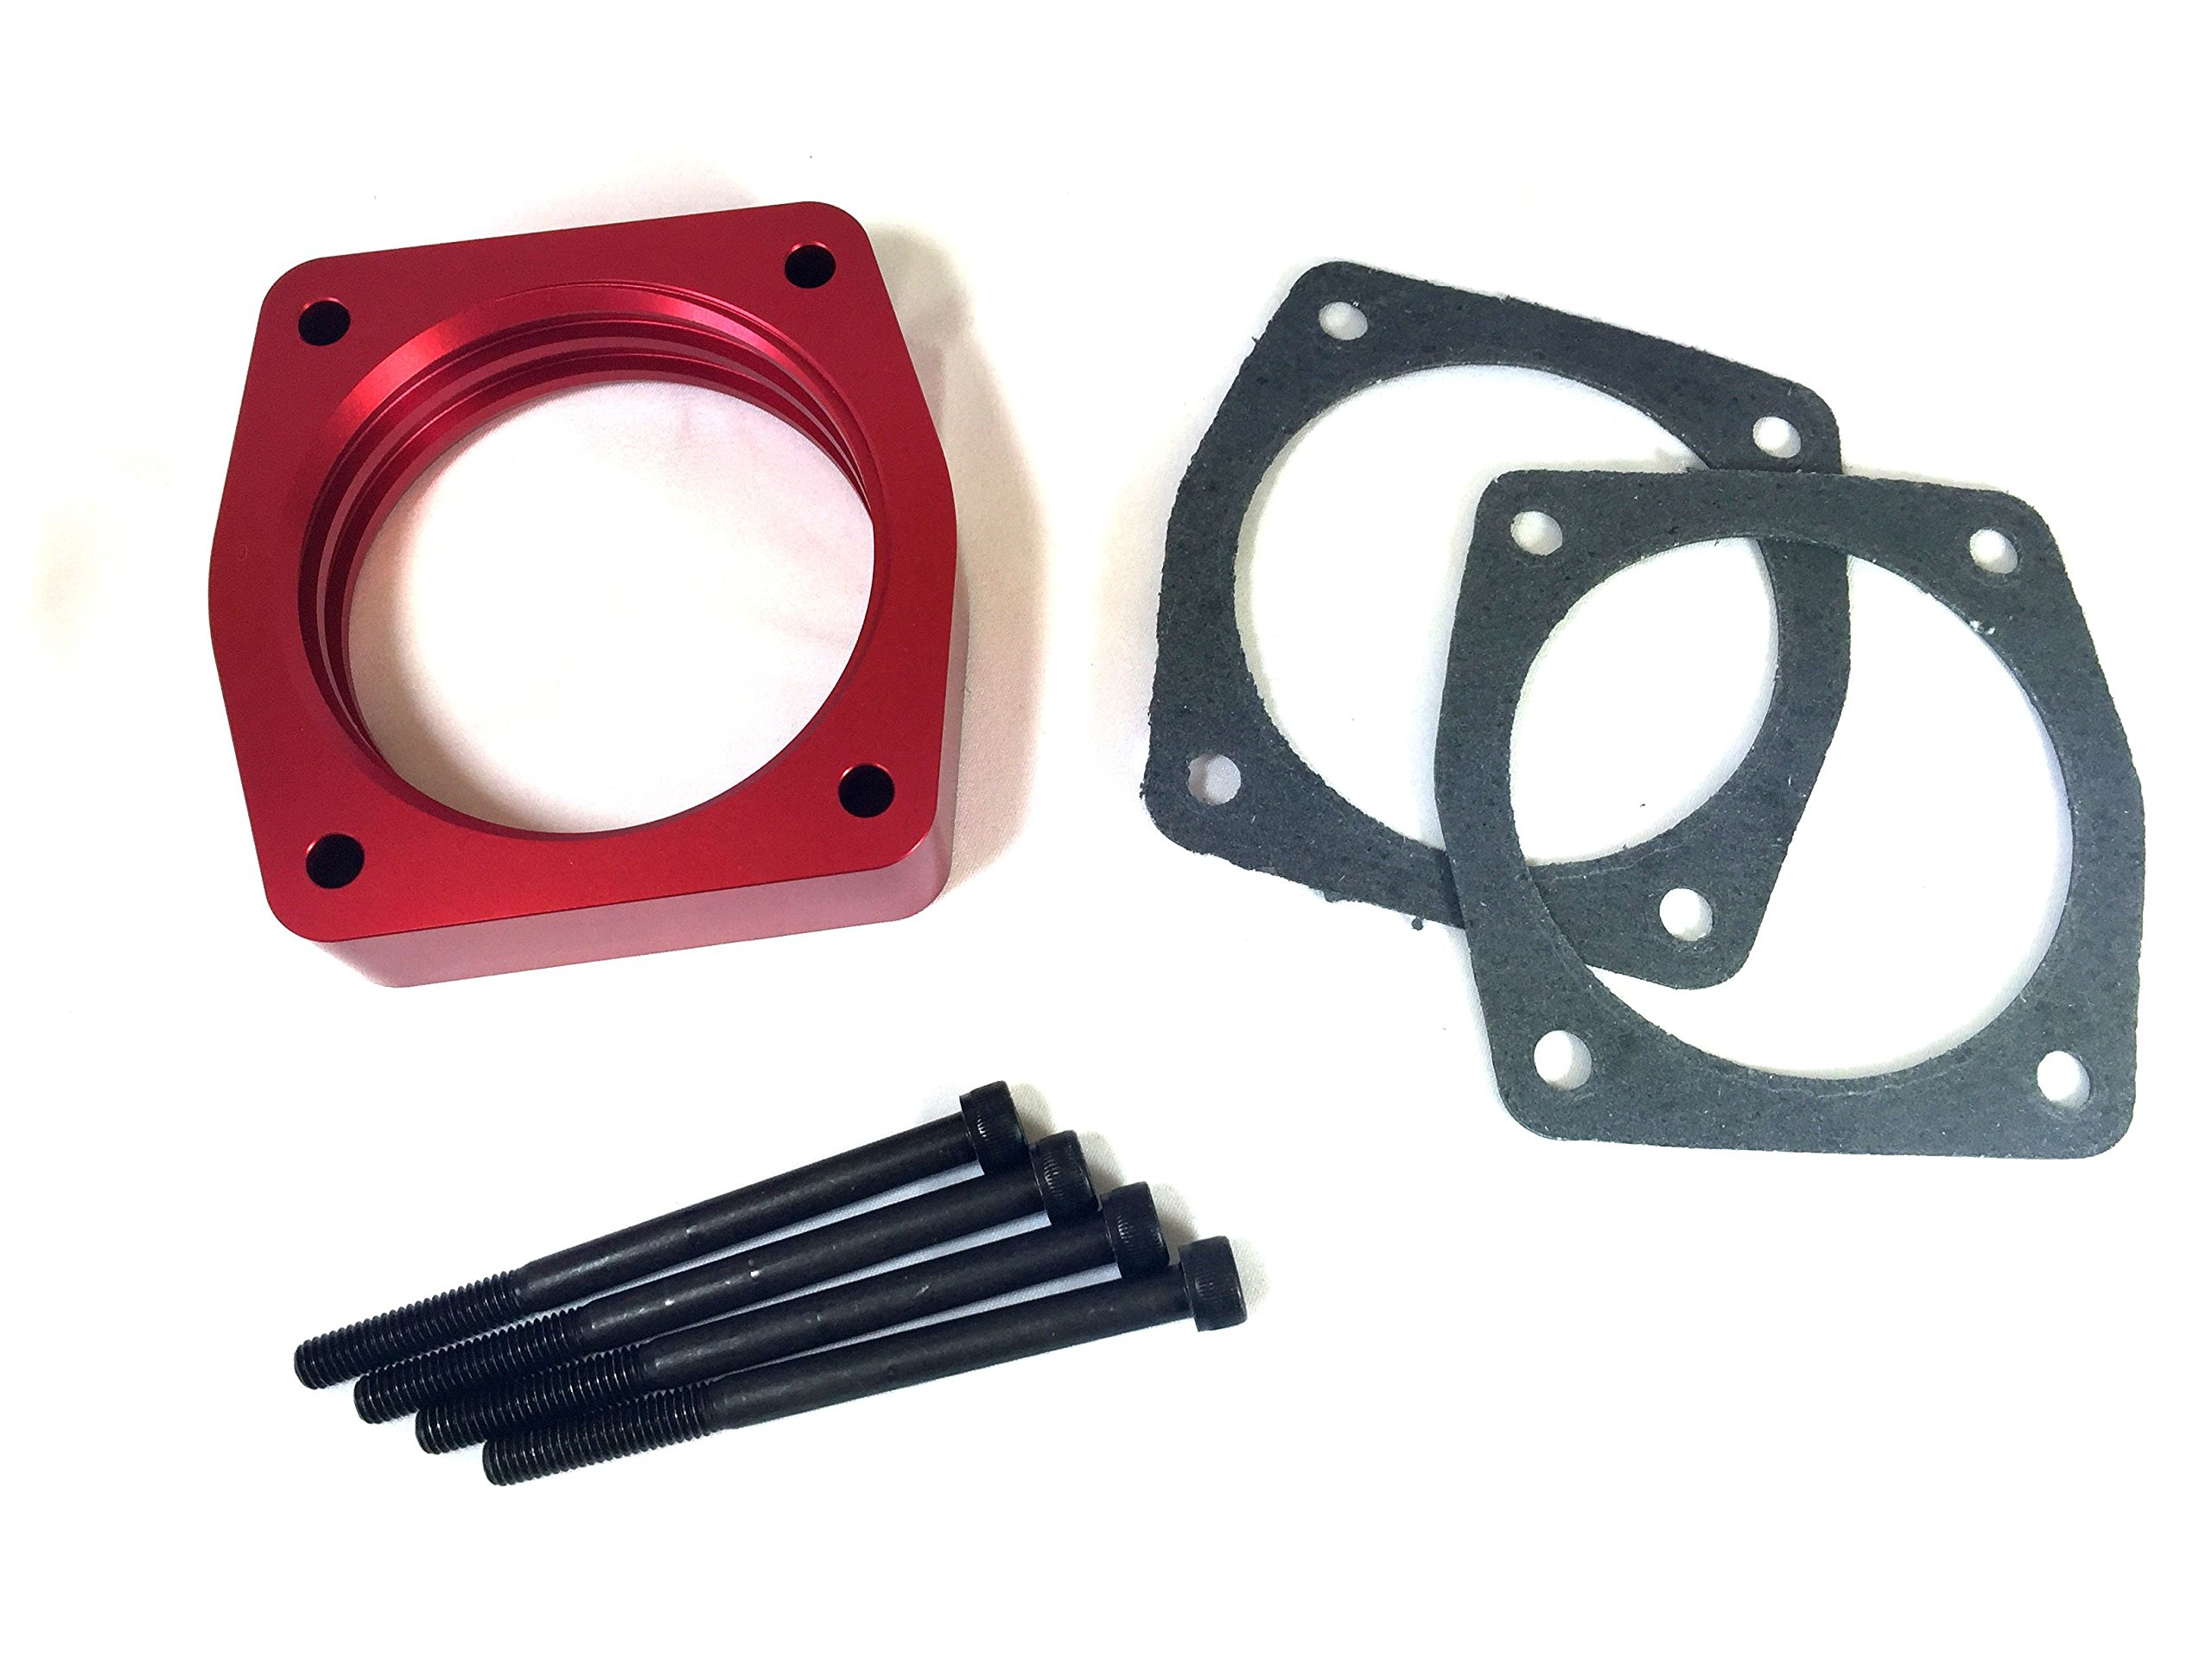 Red Throttle Body Spacer for Nissan Altima Maxima Murano 350z G35 F35 M35 3.5L